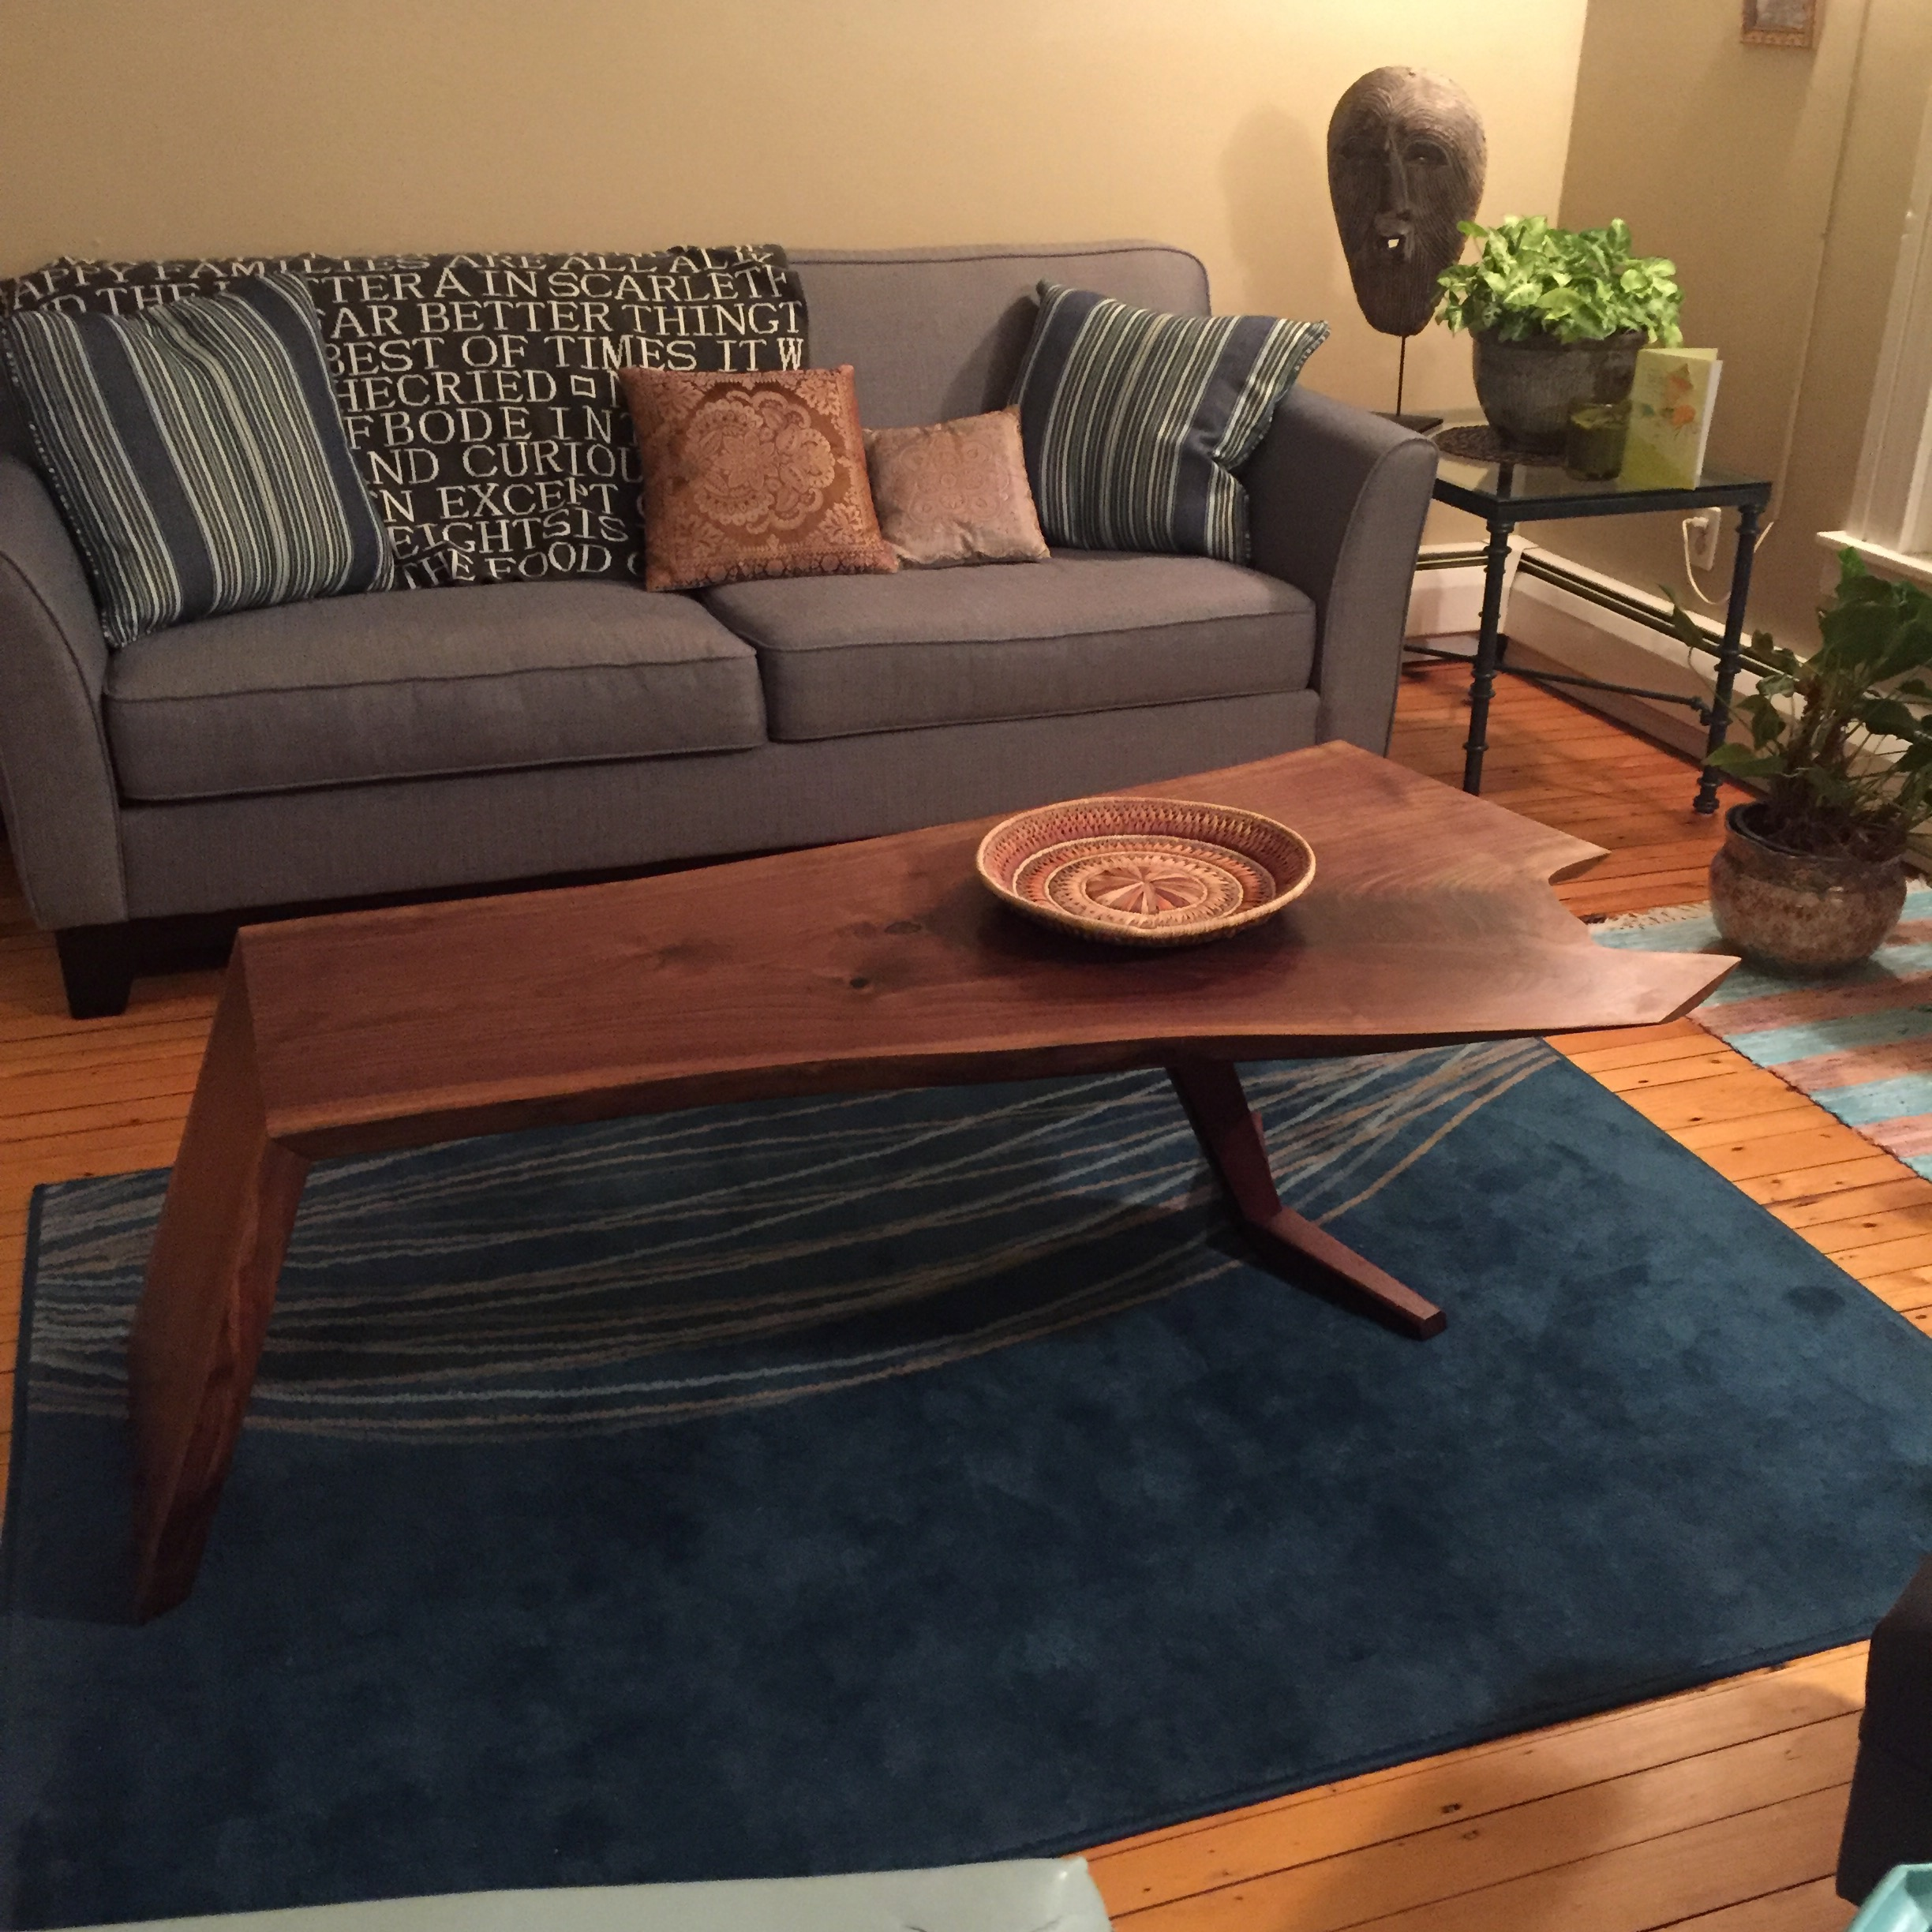 Reflex Coffee Table - Walnut - 18 x 60 x 22